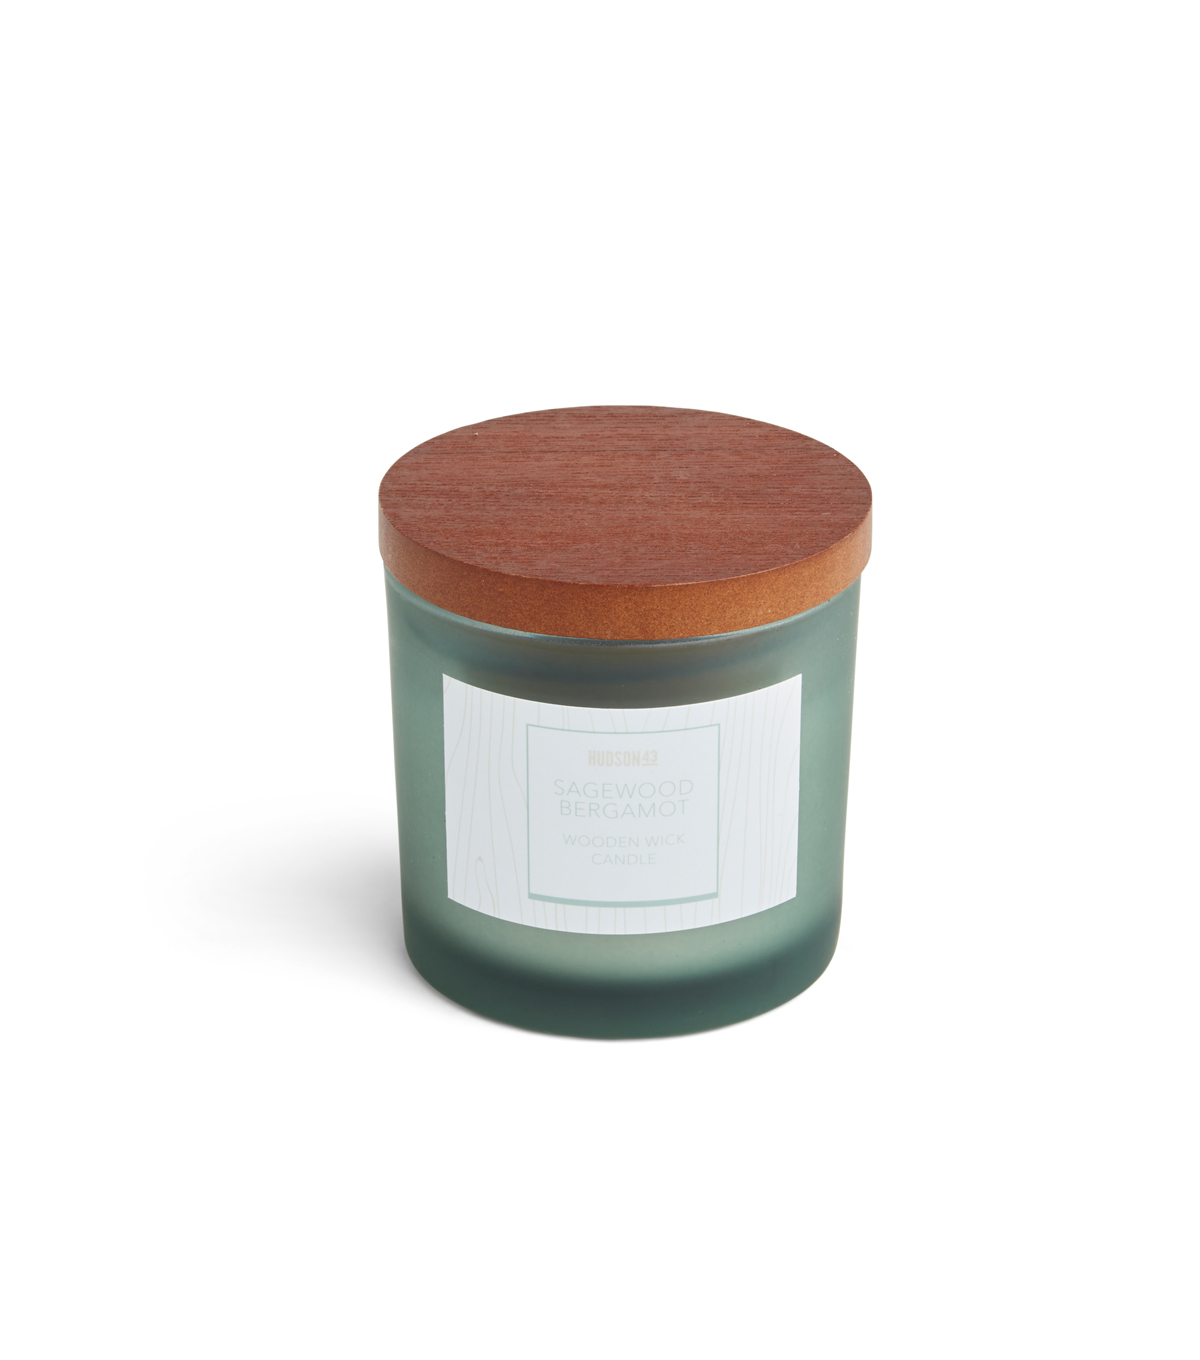 Haven St. 5oz Wooden Wick Jar Candle-Sagewood Bergamot